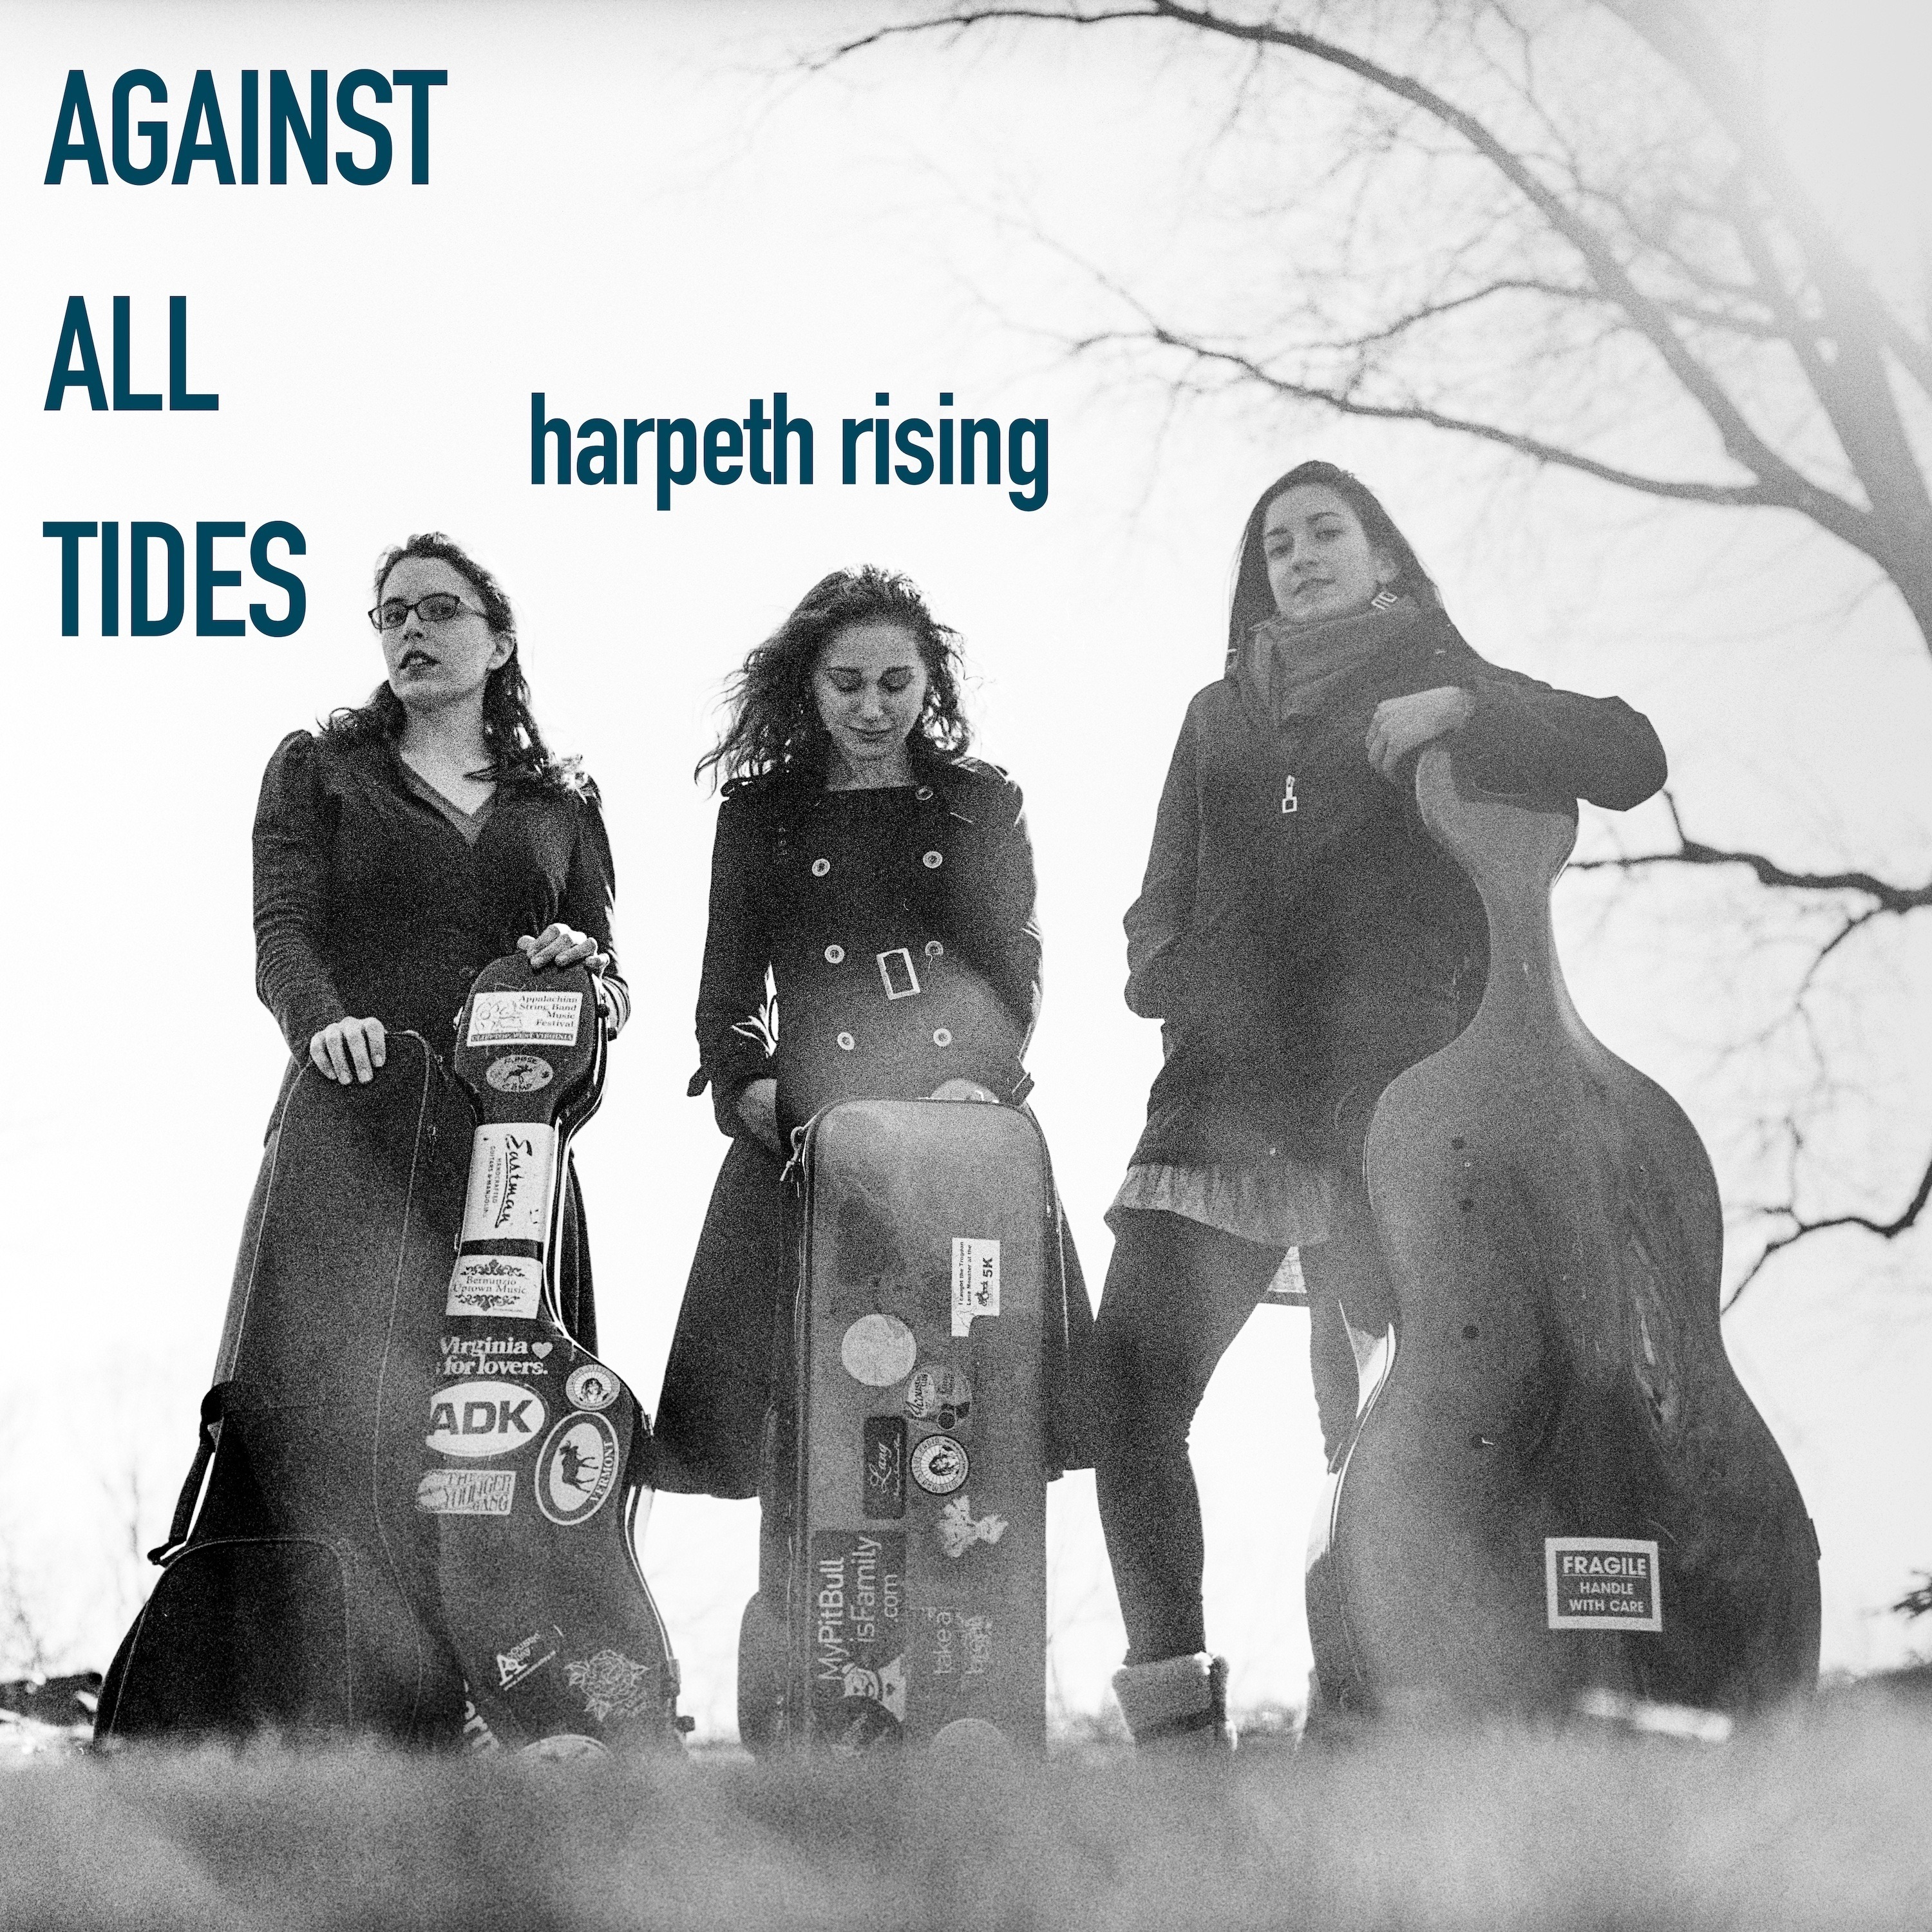 Against All Tides